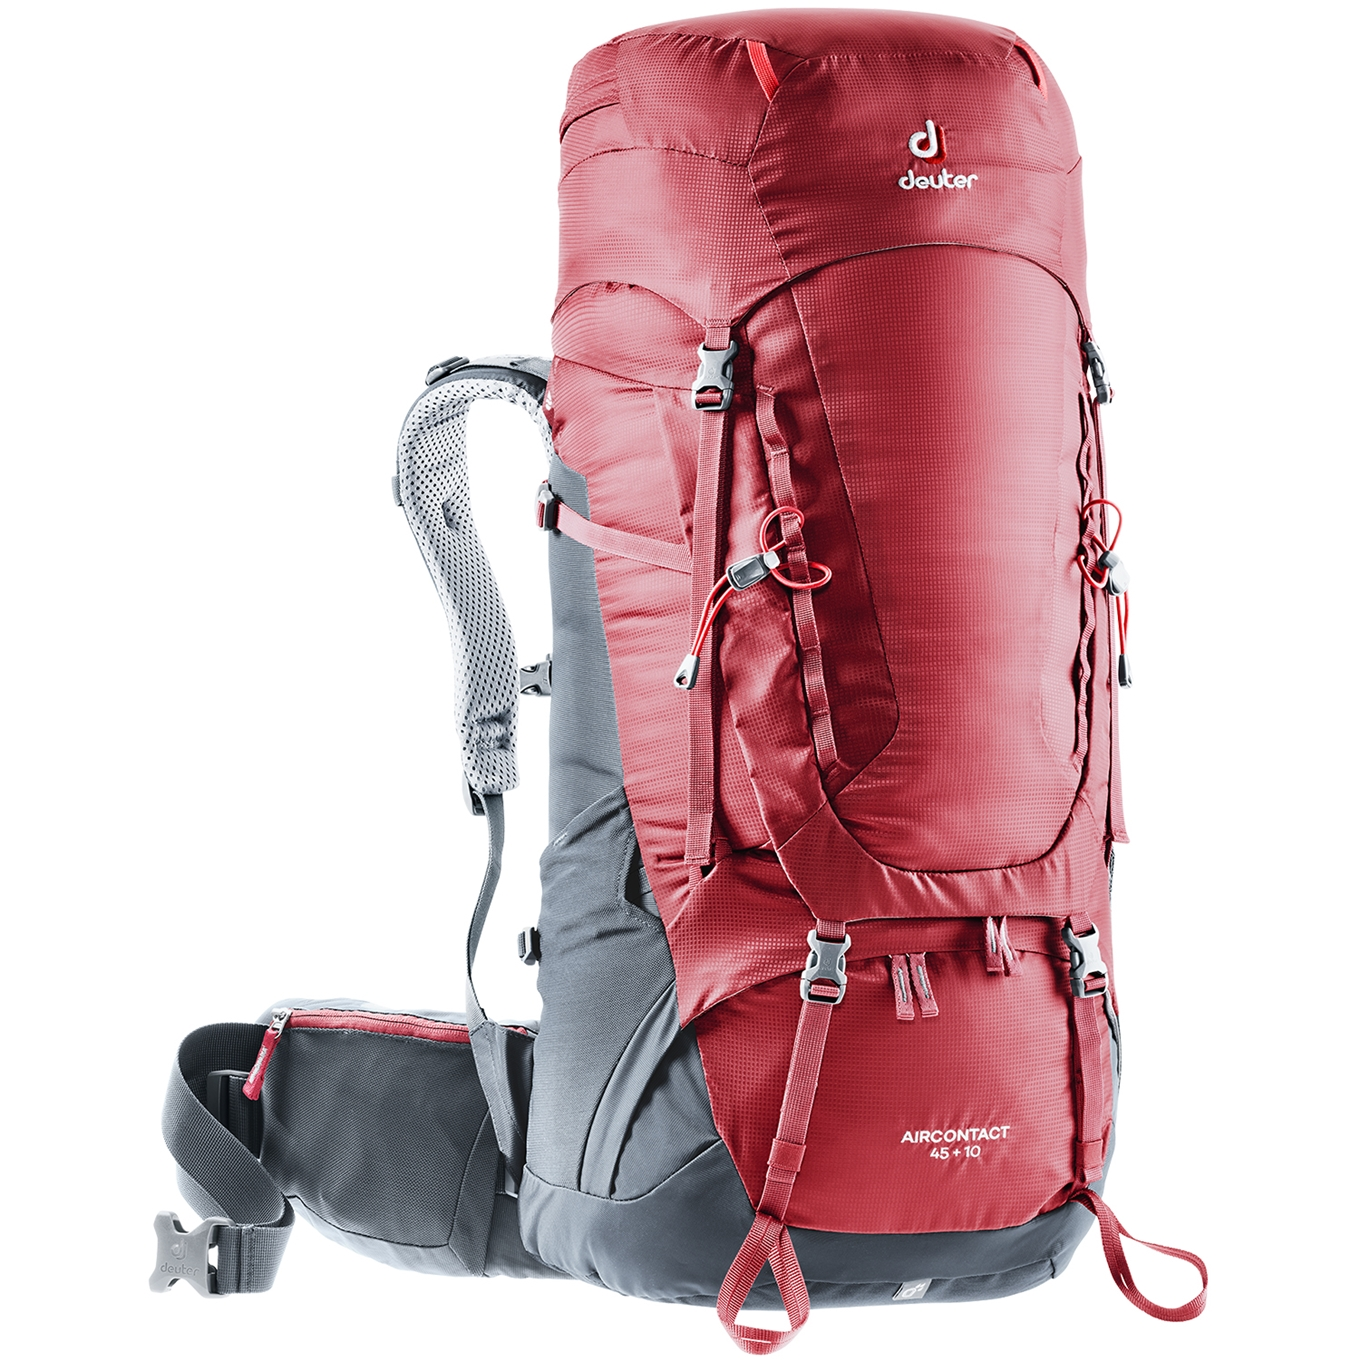 Deuter Aircontact 45 + 10 Backpack cranberry/graphite backpack <br/></noscript><img class=